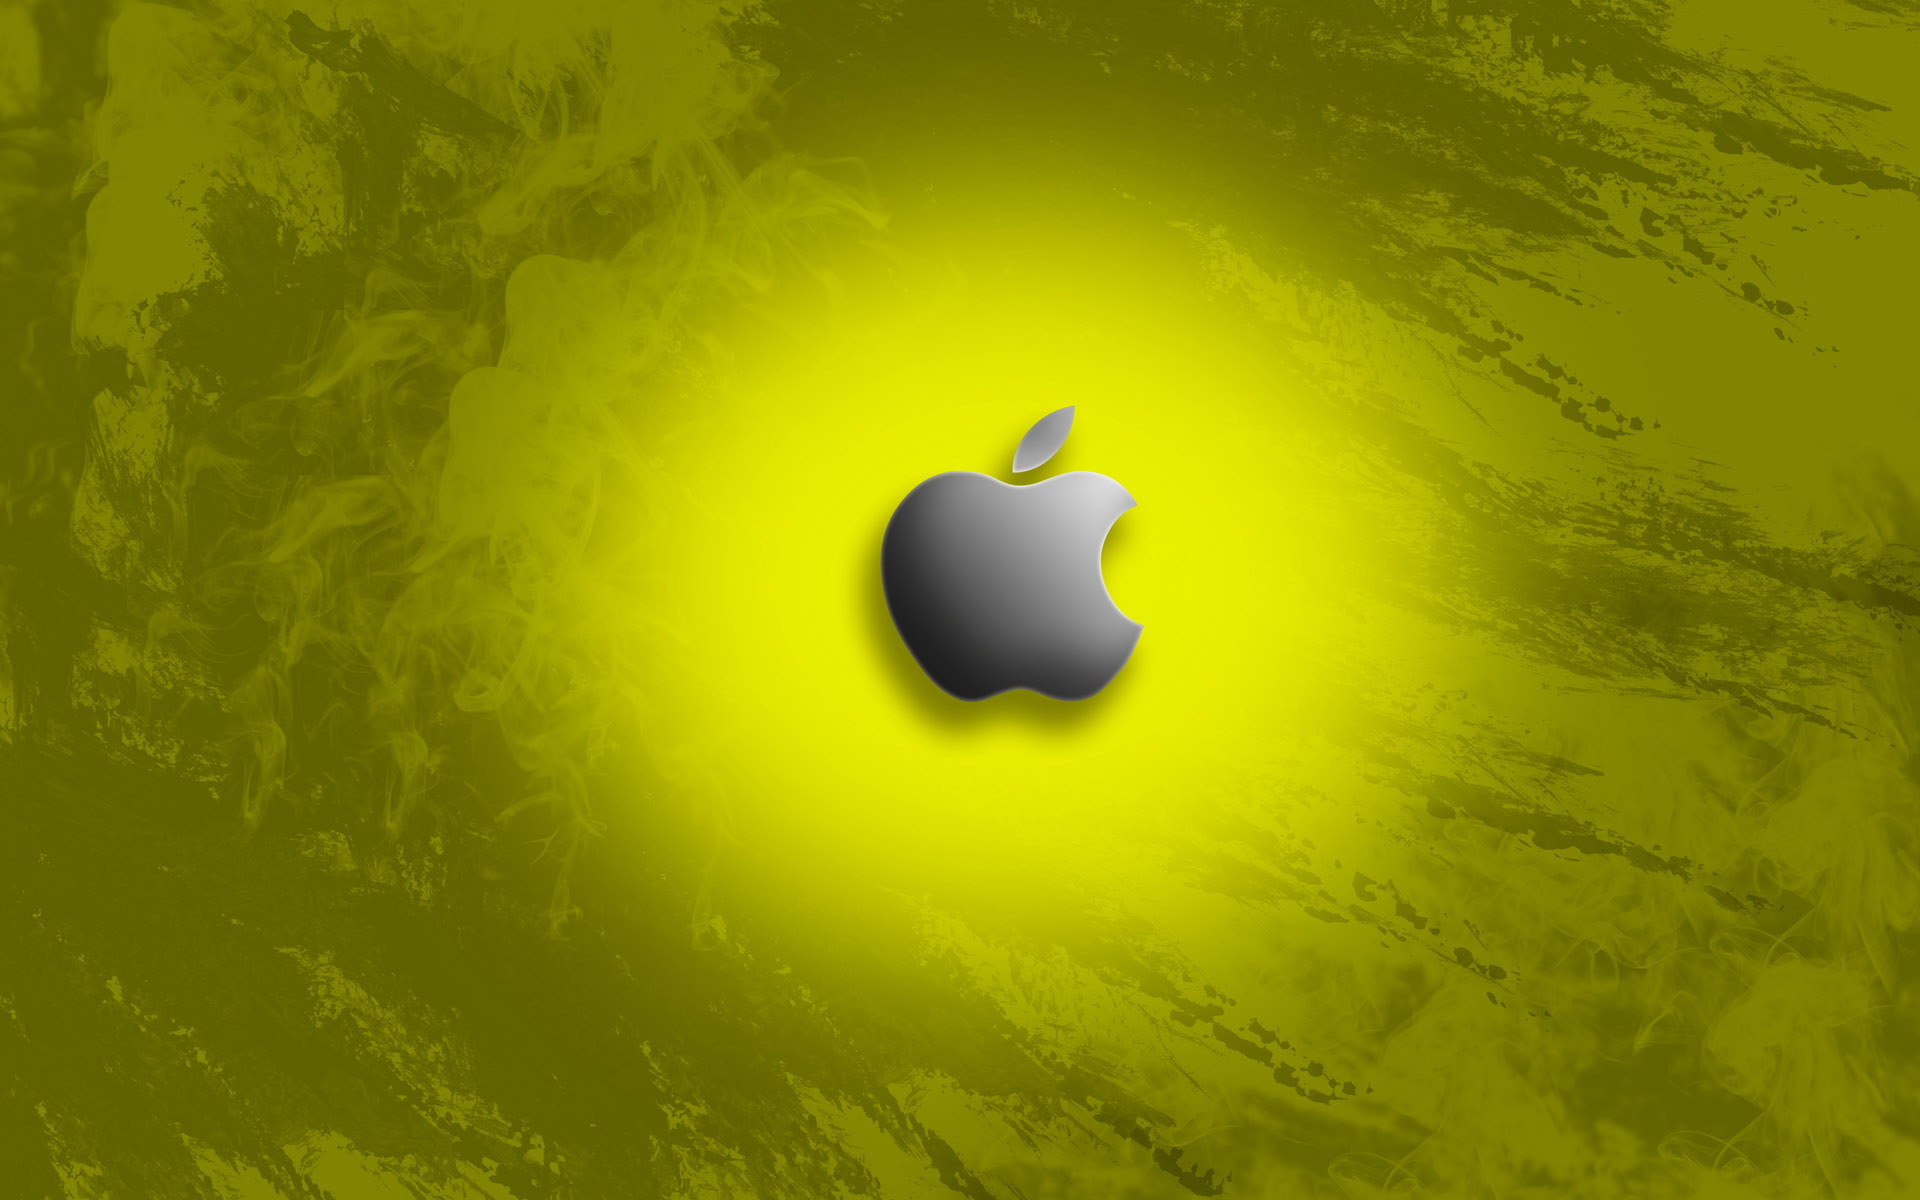 Apple wallpaper high definition 22080